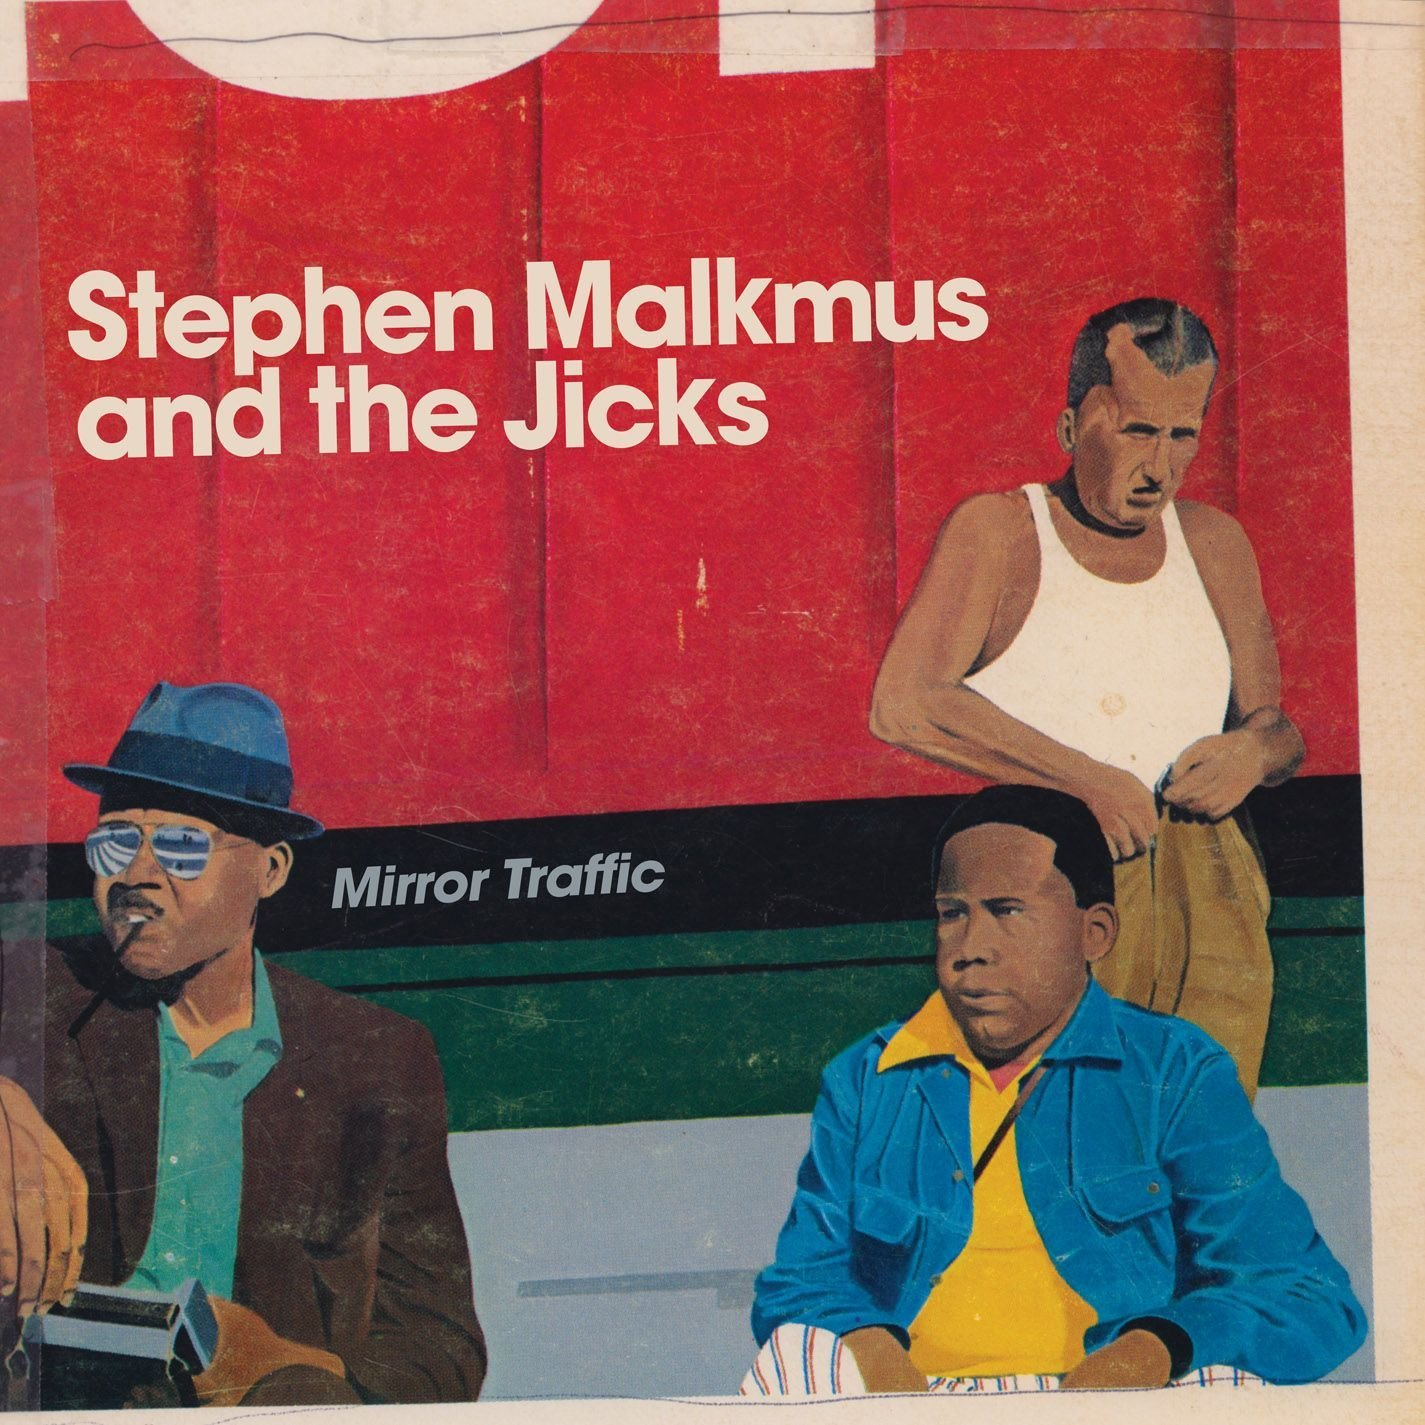 Stephen Malkmus and the Jicks, Mirror Traffic